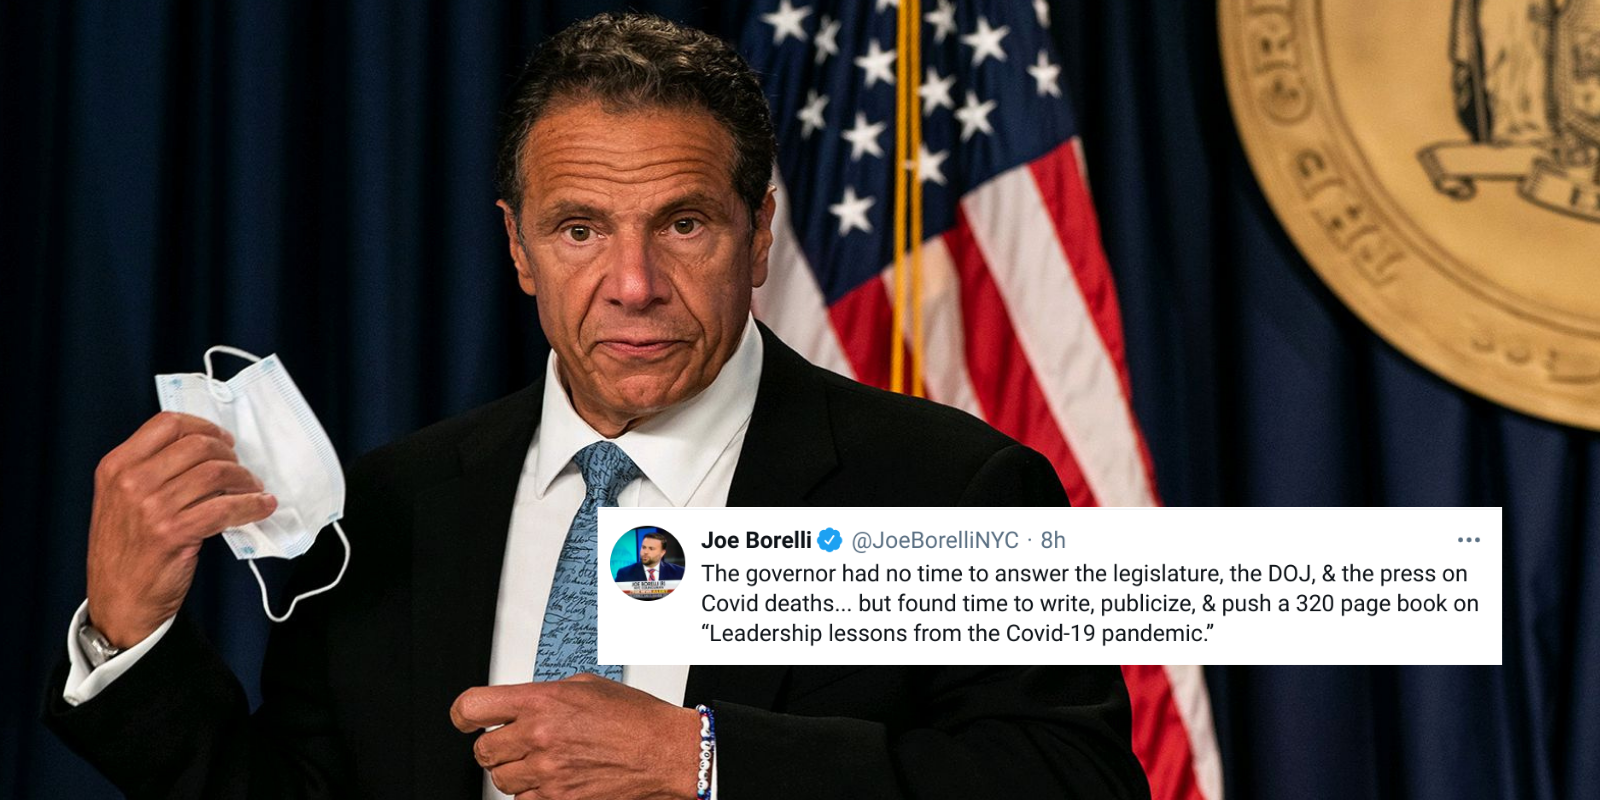 #CuomoCoverUp trends on social media after NY Gov refuses to accept blame for nursing home deaths scandal